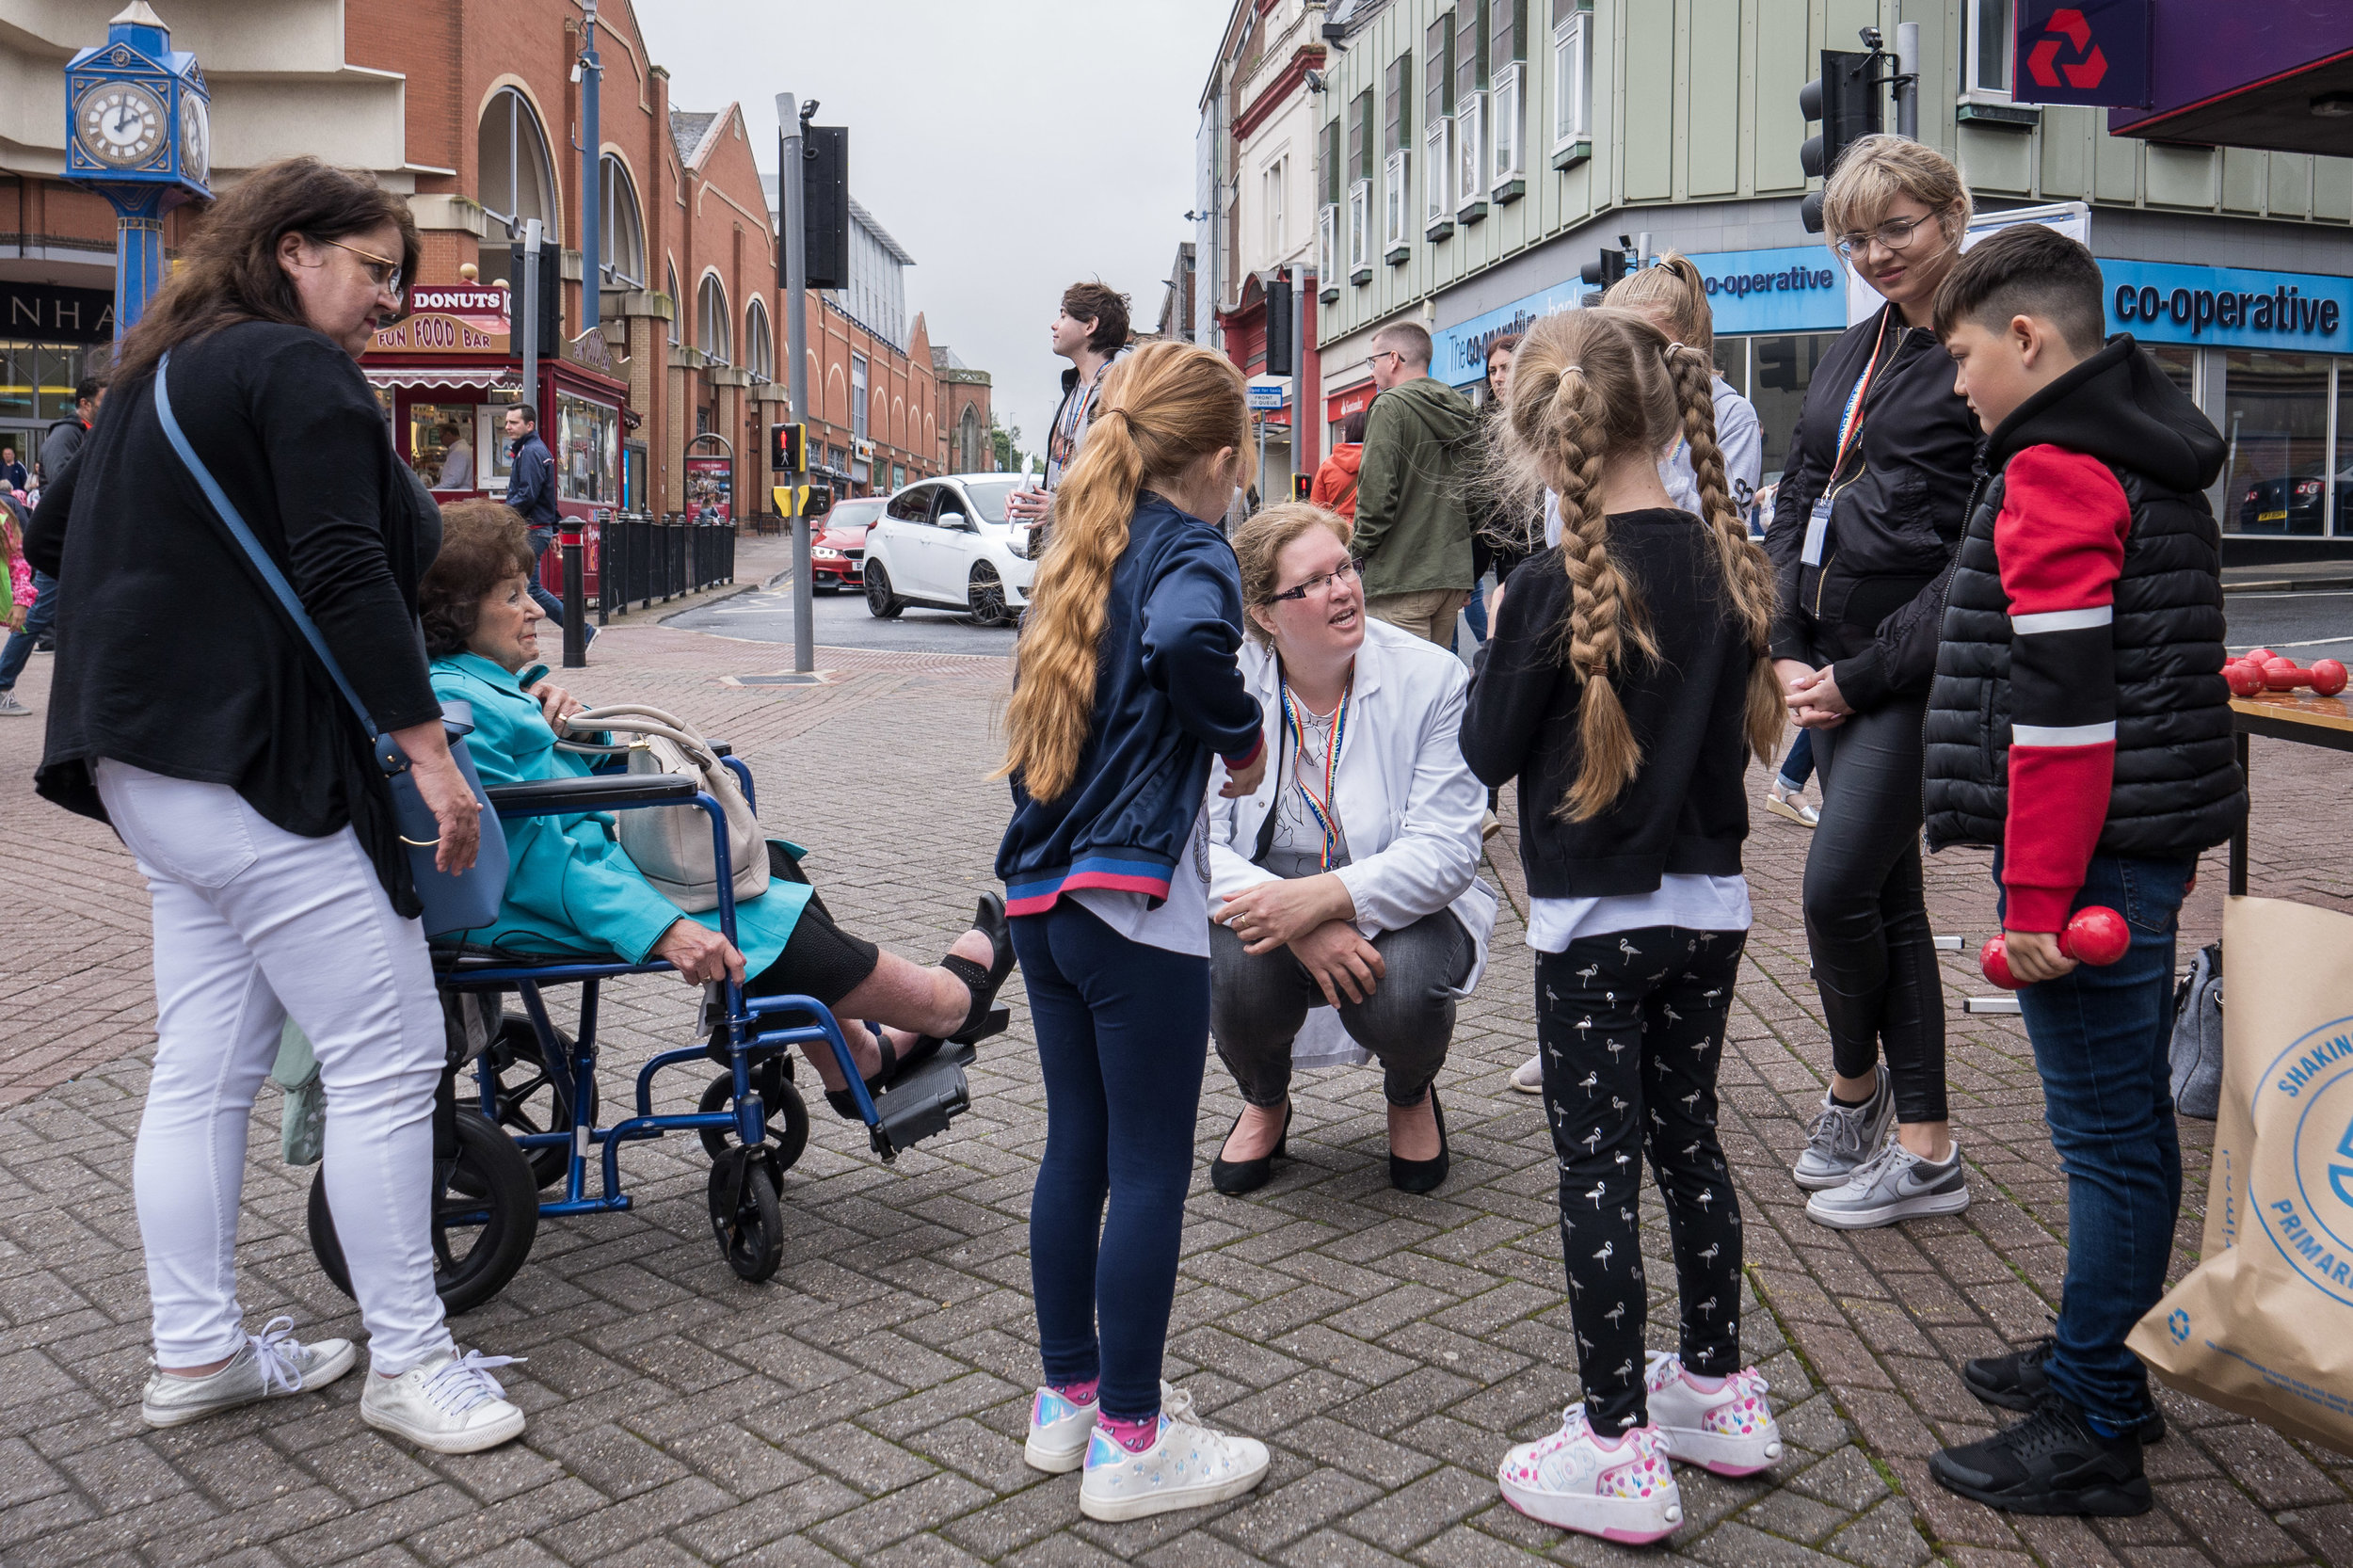 We shared our research on muscle in health & disease at Soapbox Science, Stoke-on-Trent - July 6th 2019